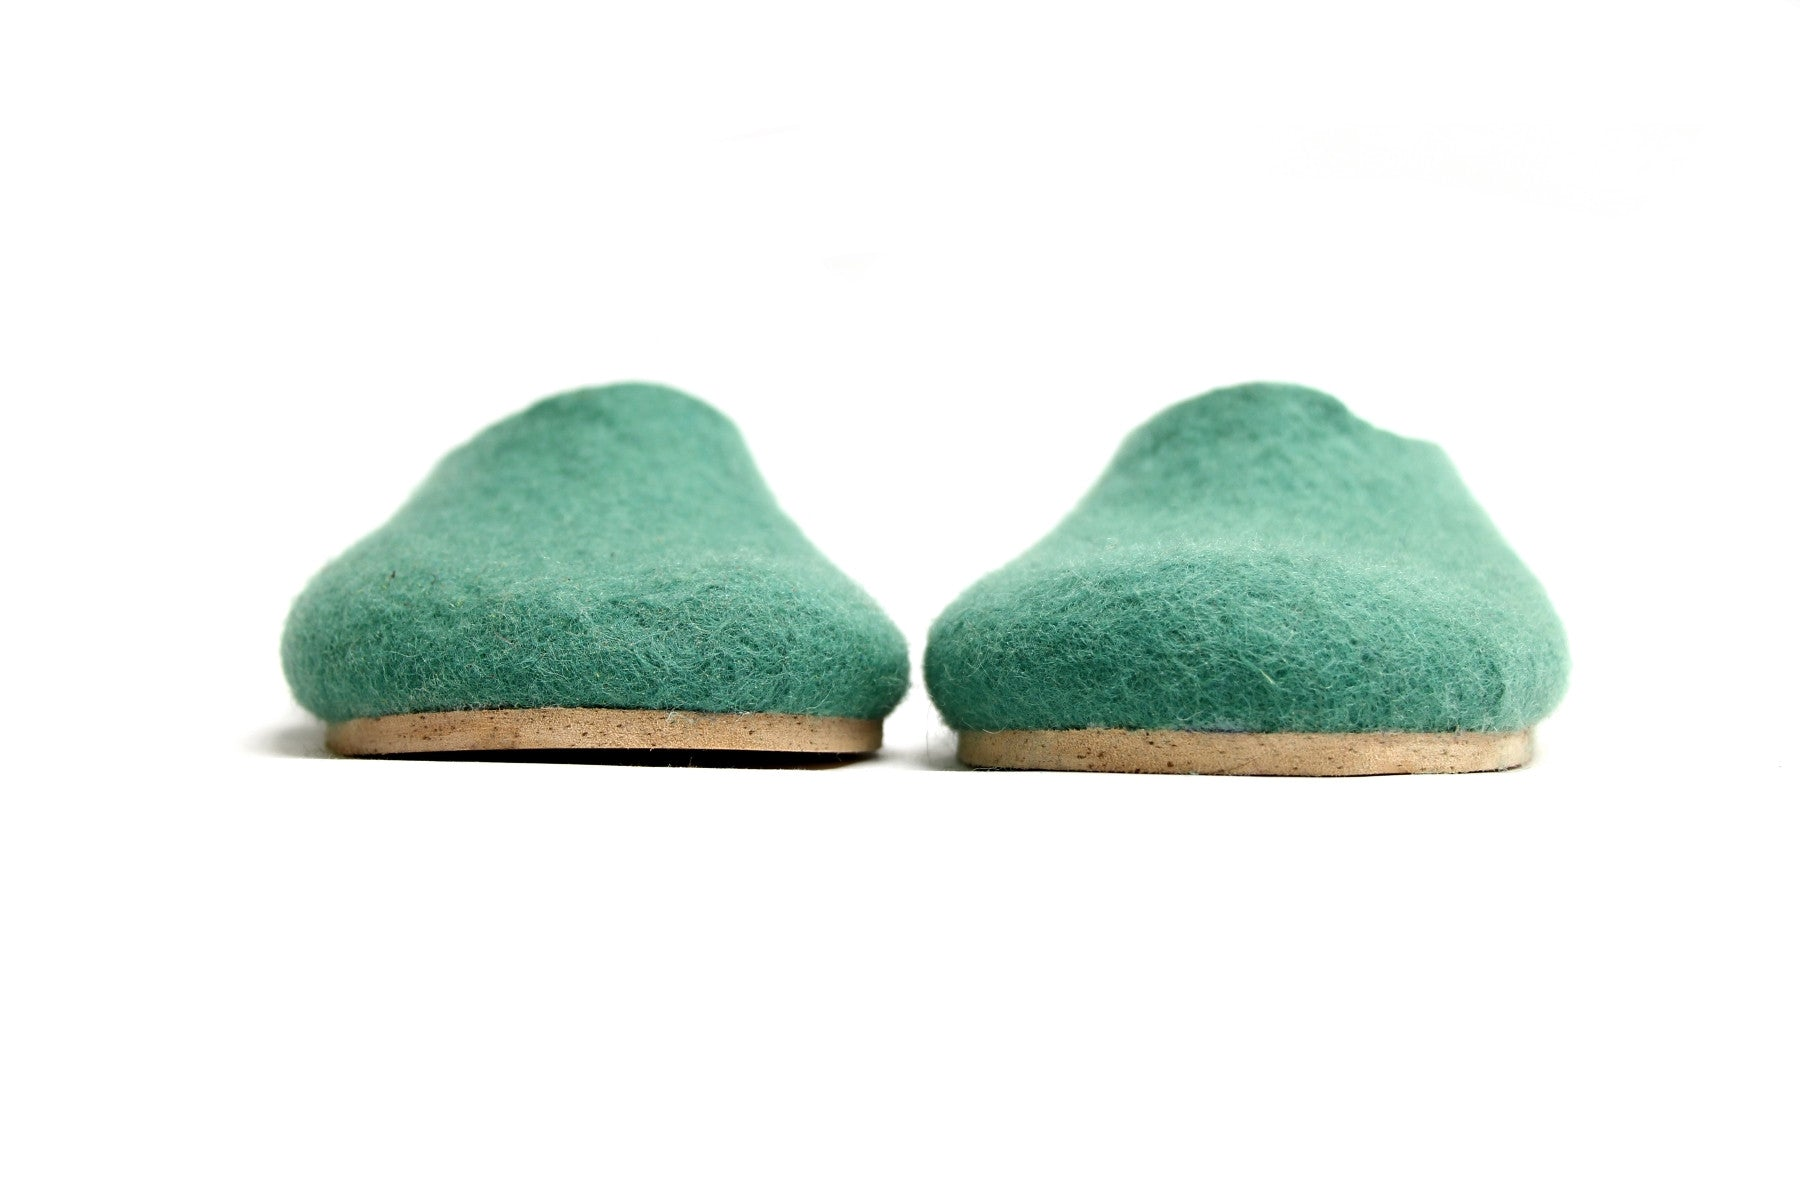 Womens Felt Slippers Lucite Green Contrast Sole - Wool Walker  - 3